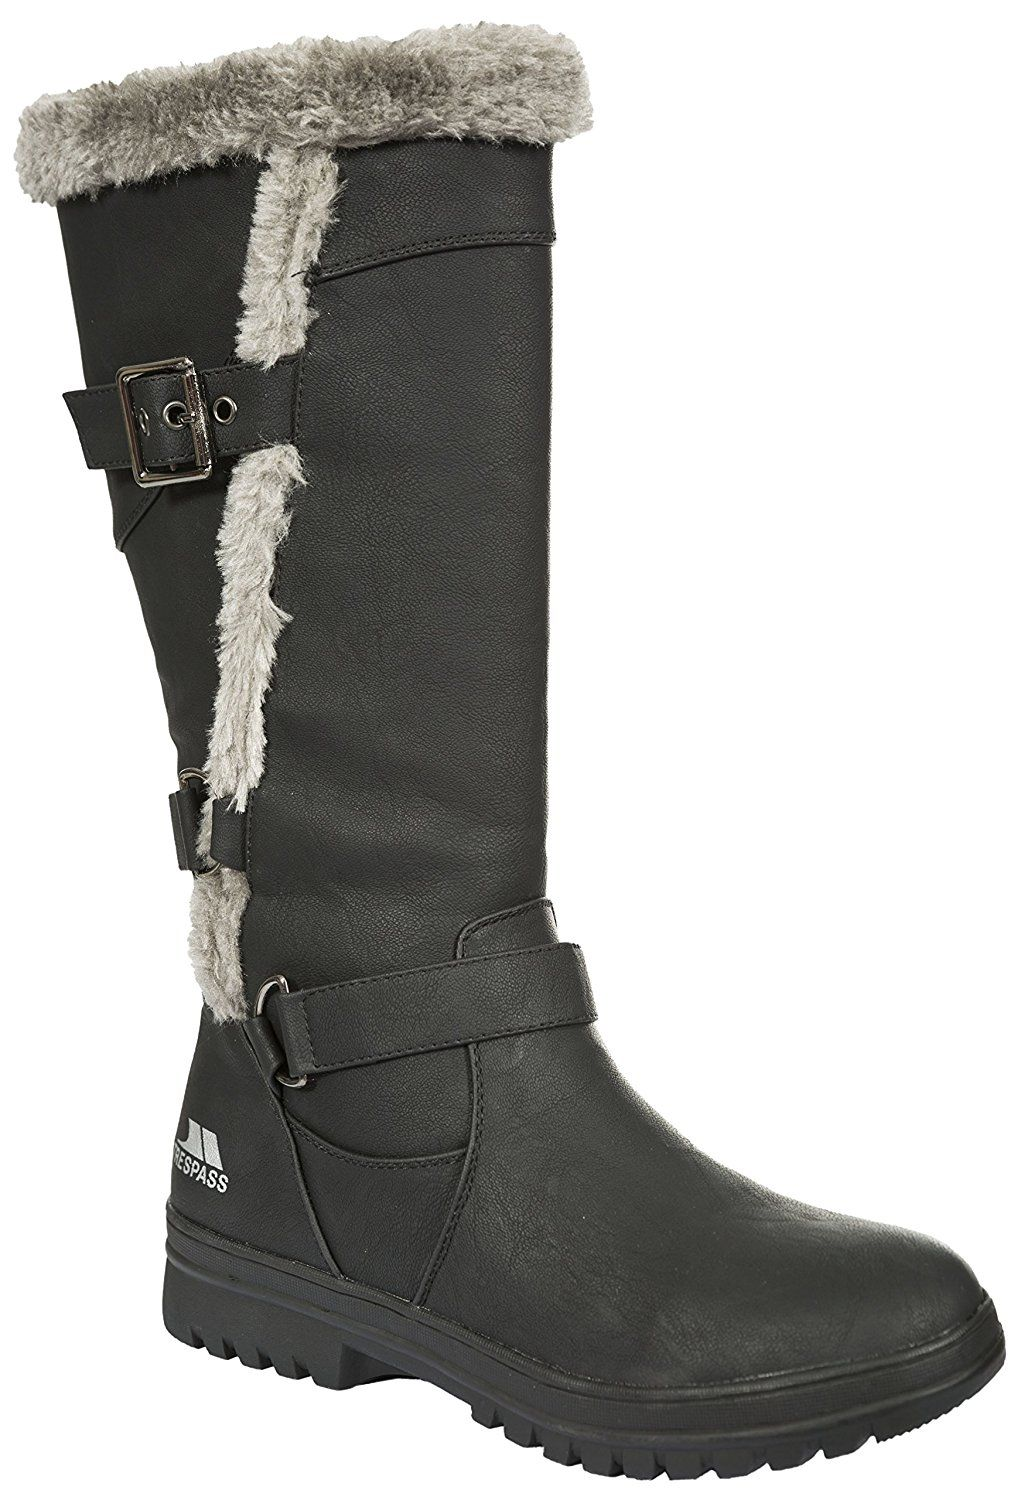 Trespass womens Trespass Womens/Ladies Salvatore Faux Fur Lined Winter Snow  Boots Polyurethane >>> Find out more about the great product at the image  link.